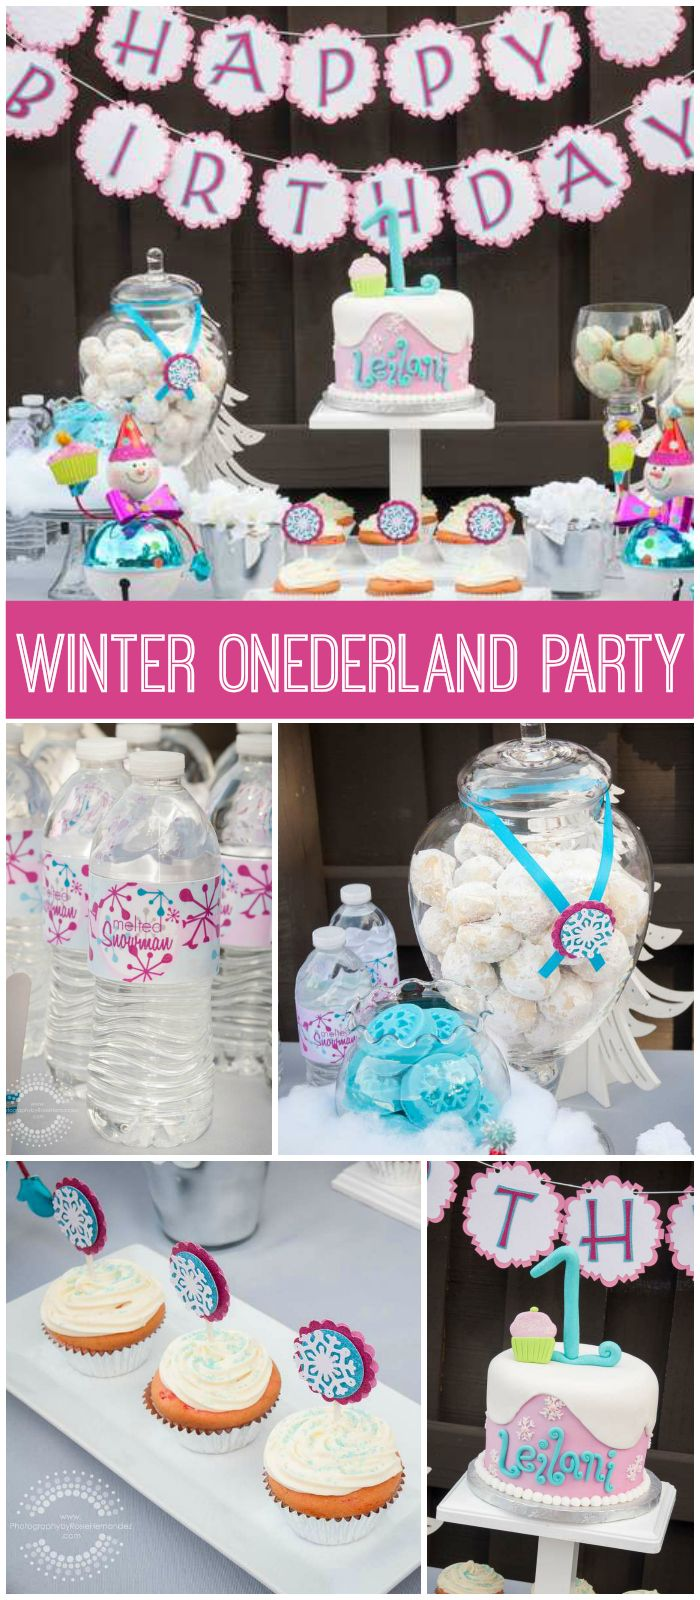 A winter onederland girl birthday party with a fantastic cake and snowflake topped cupcakes! See more party planning ideas at CatchMyParty.com!